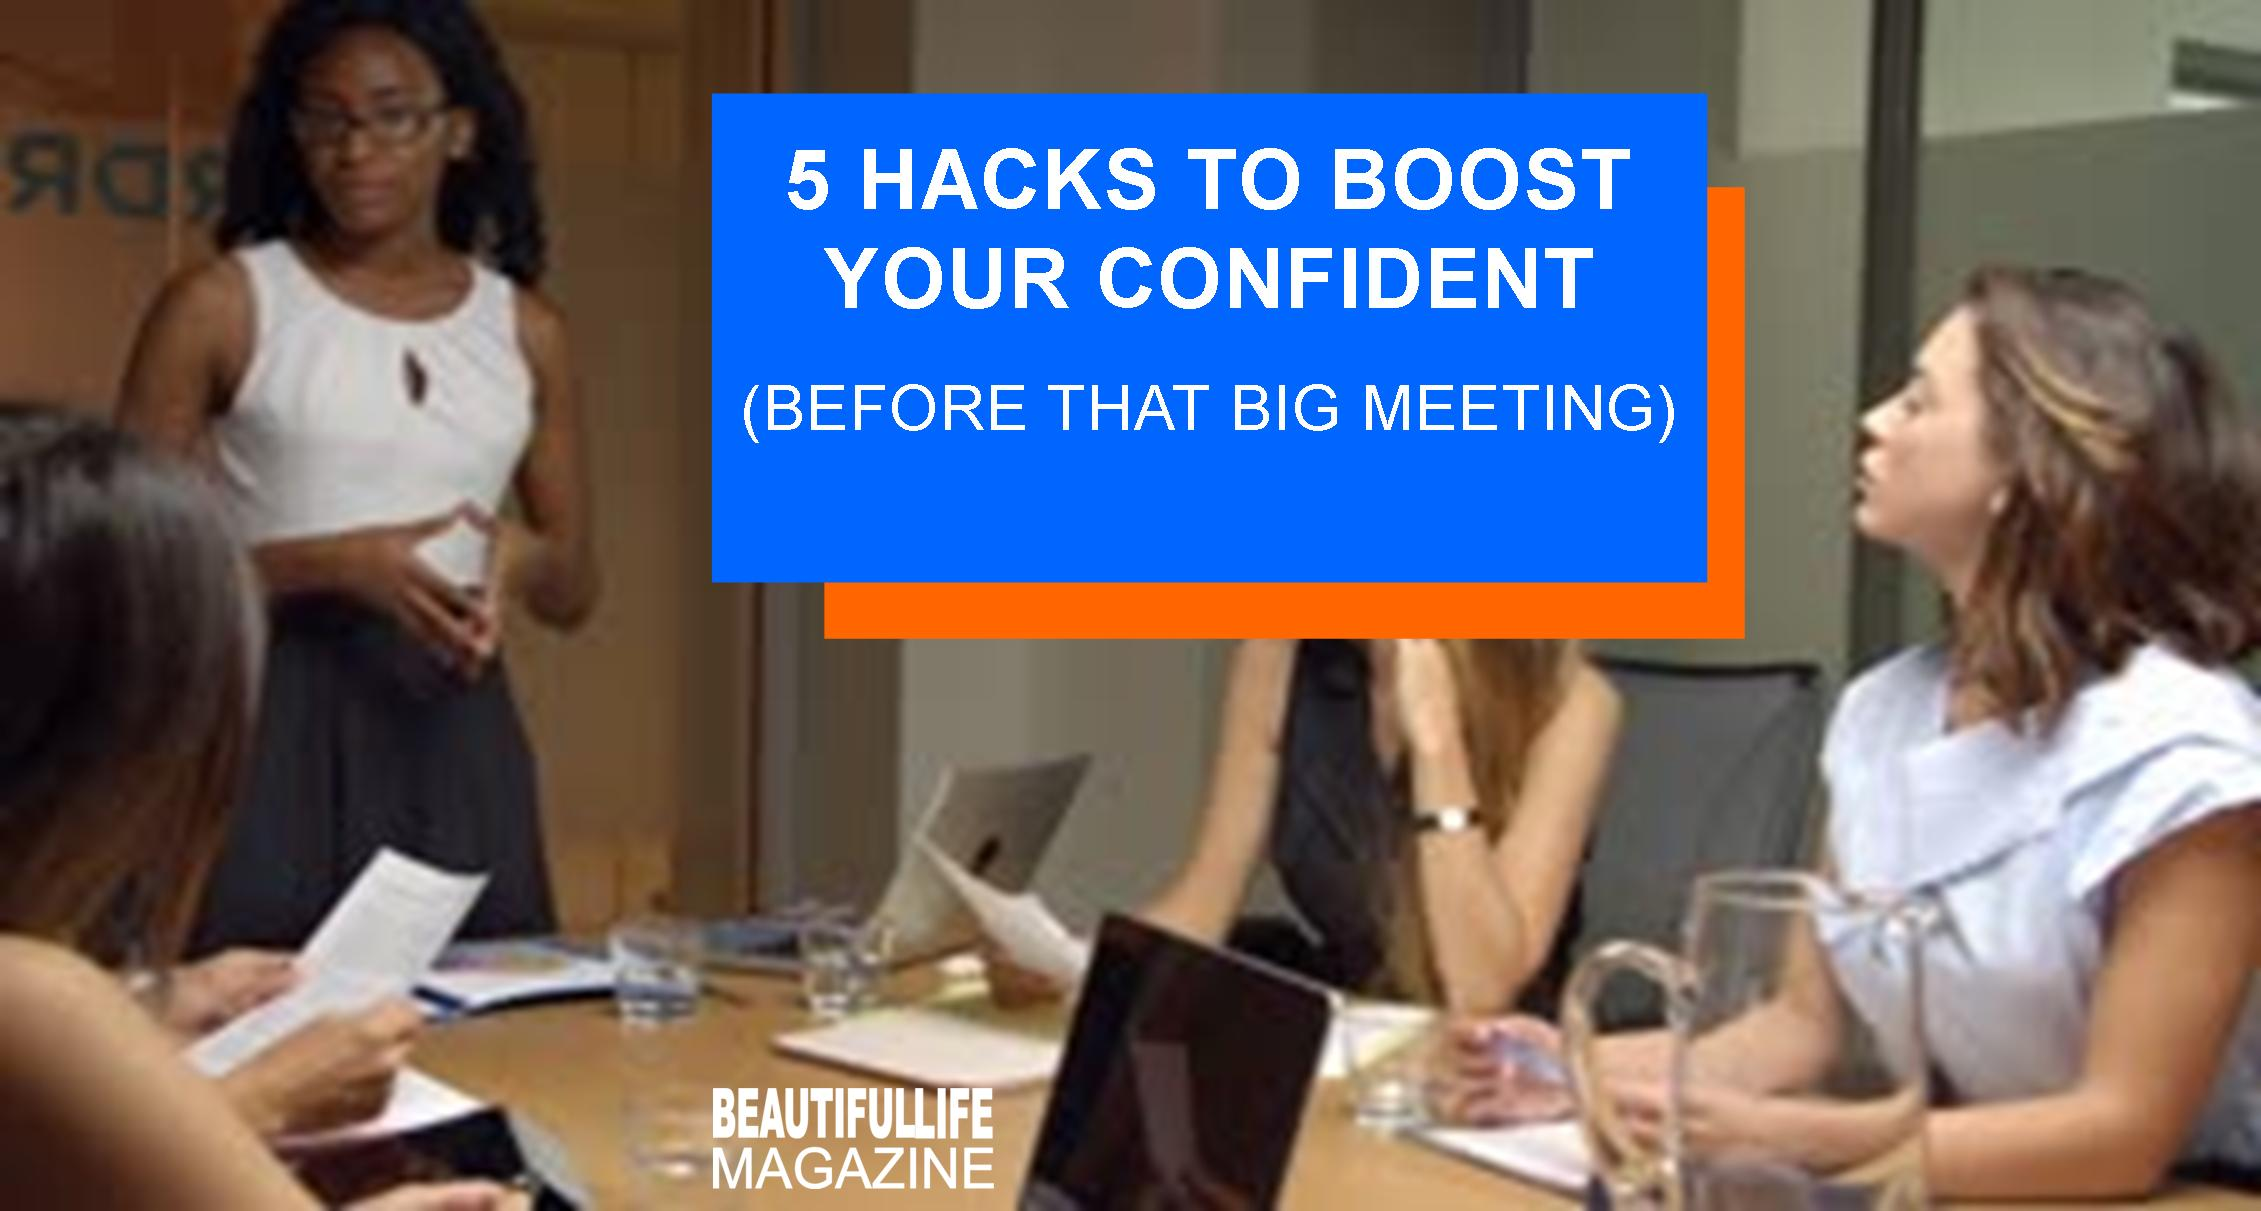 With confidence in you next job interview, client meeting, or public speaking engagement, you're going to walk in like you own the place. Here's how